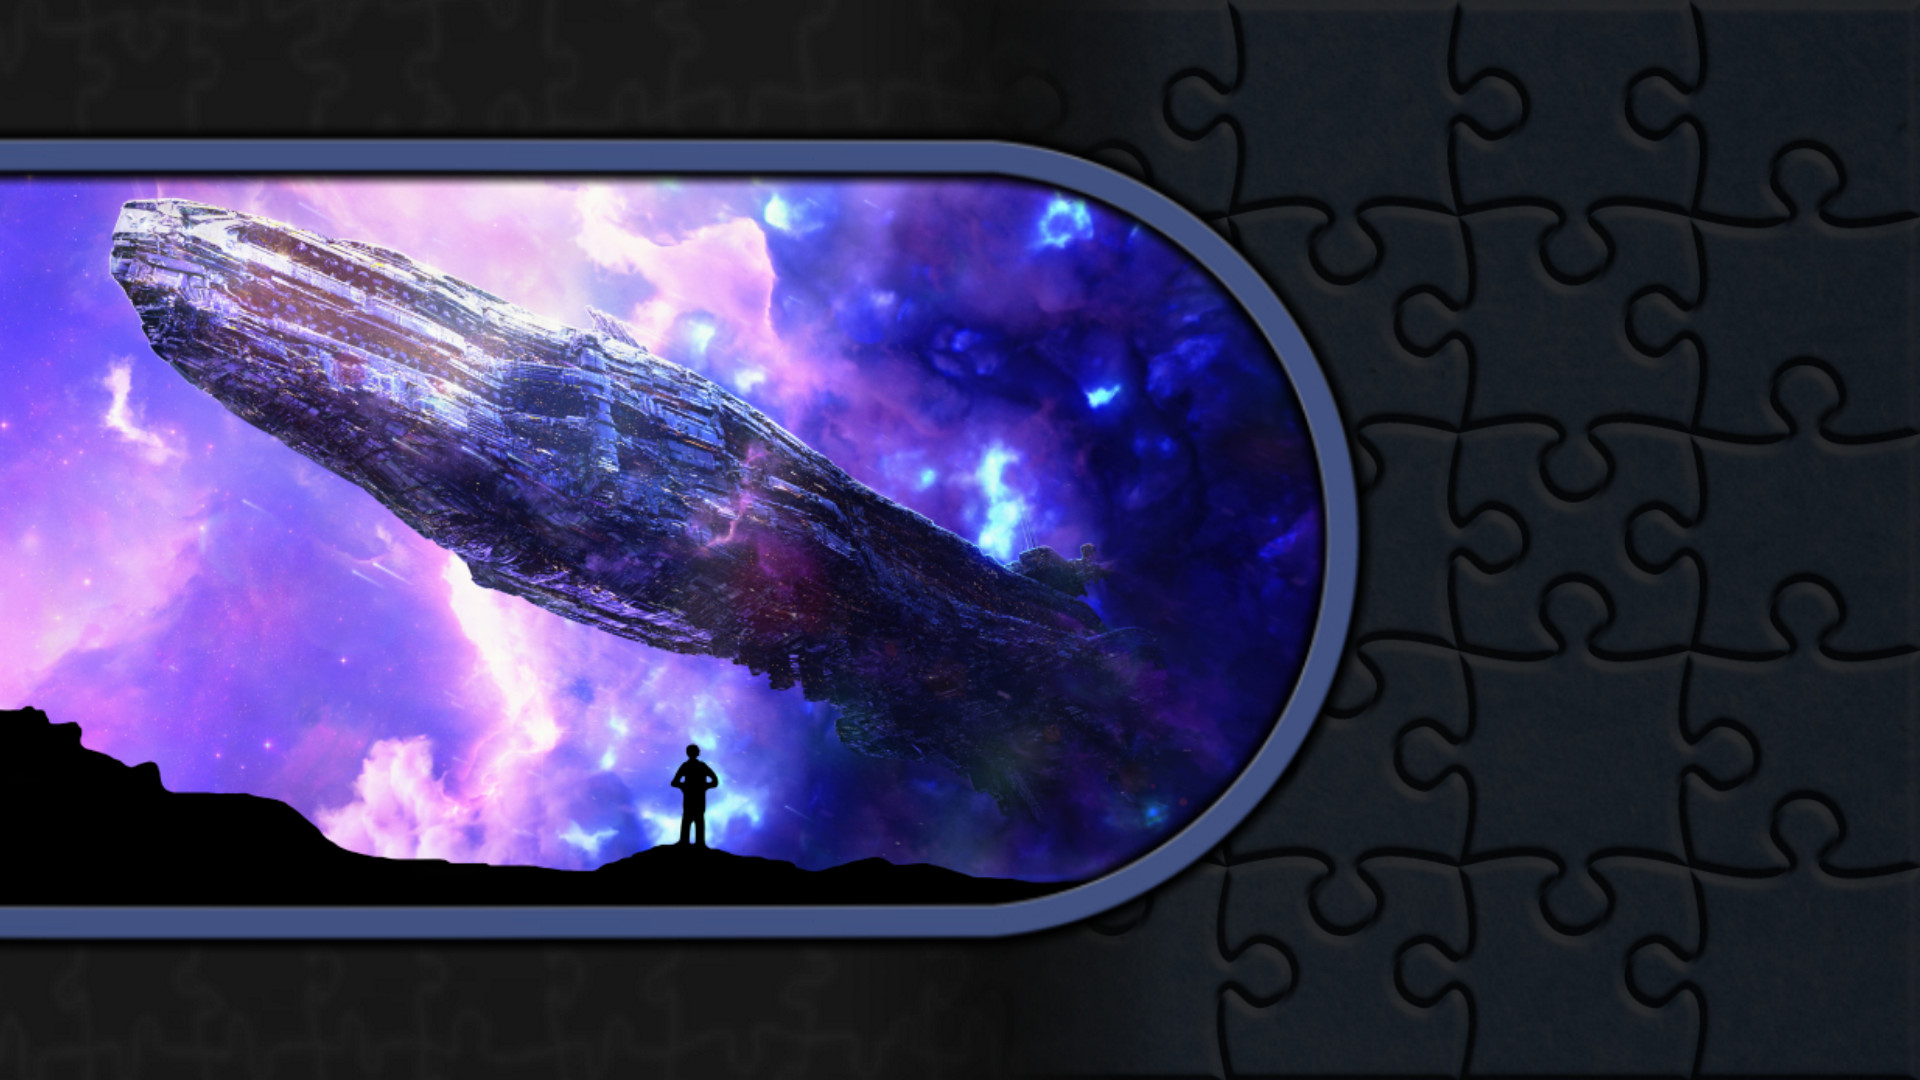 Pixel Puzzles Illustrations & Anime - Jigsaw Pack: Space screenshot